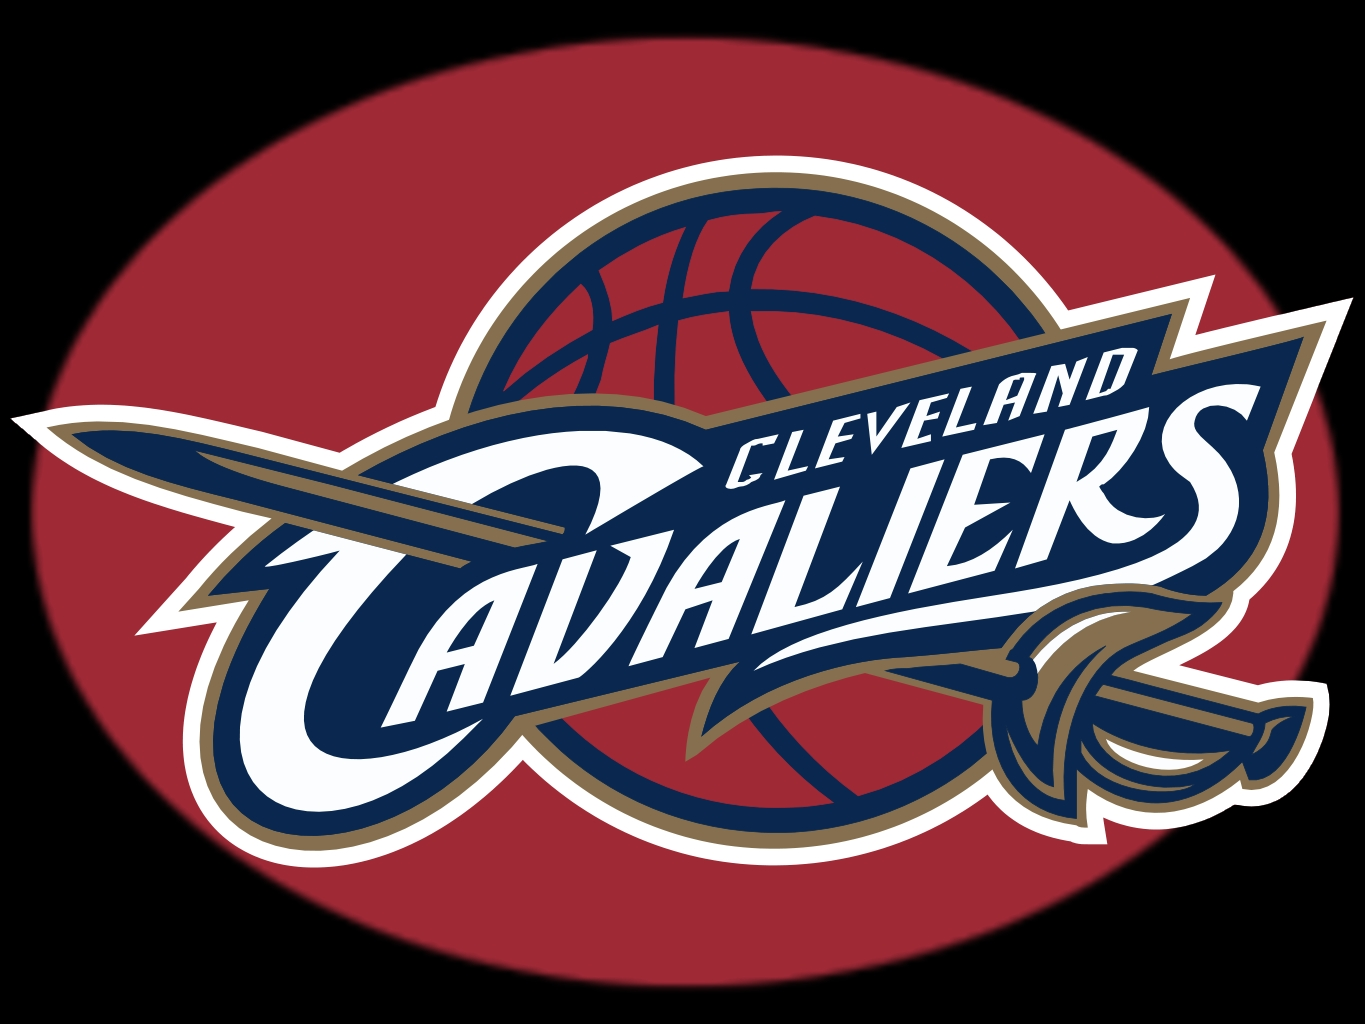 Cleveland Cavaliers Logo >> History of All Logos: All Cleveland Cavaliers Logos